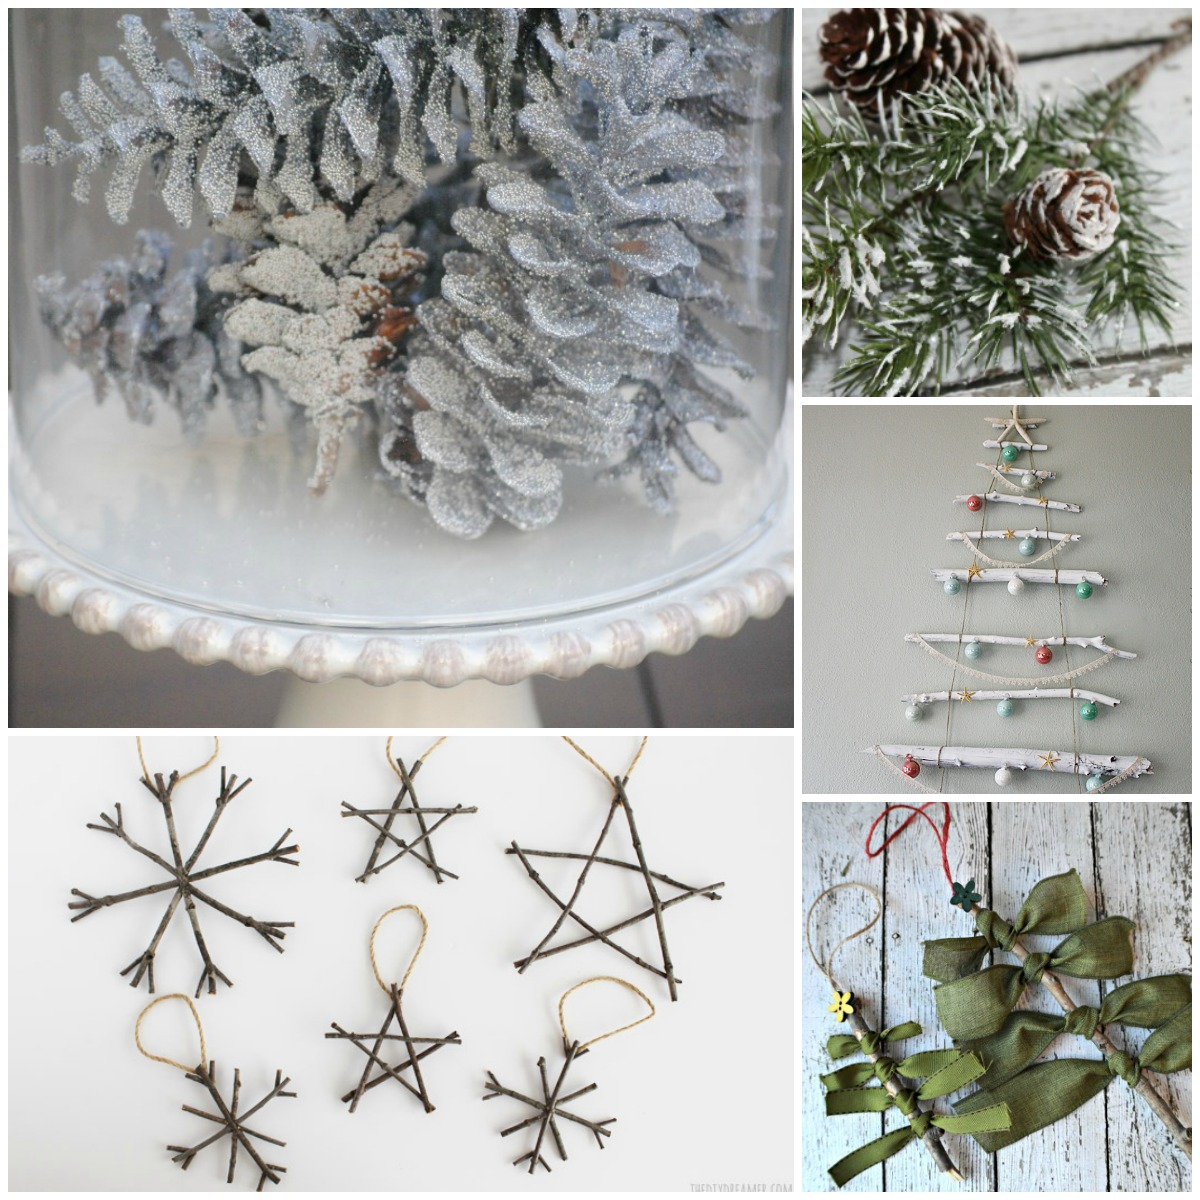 Natural Christmas Decor Ideas (aka Free Christmas Decorations!)